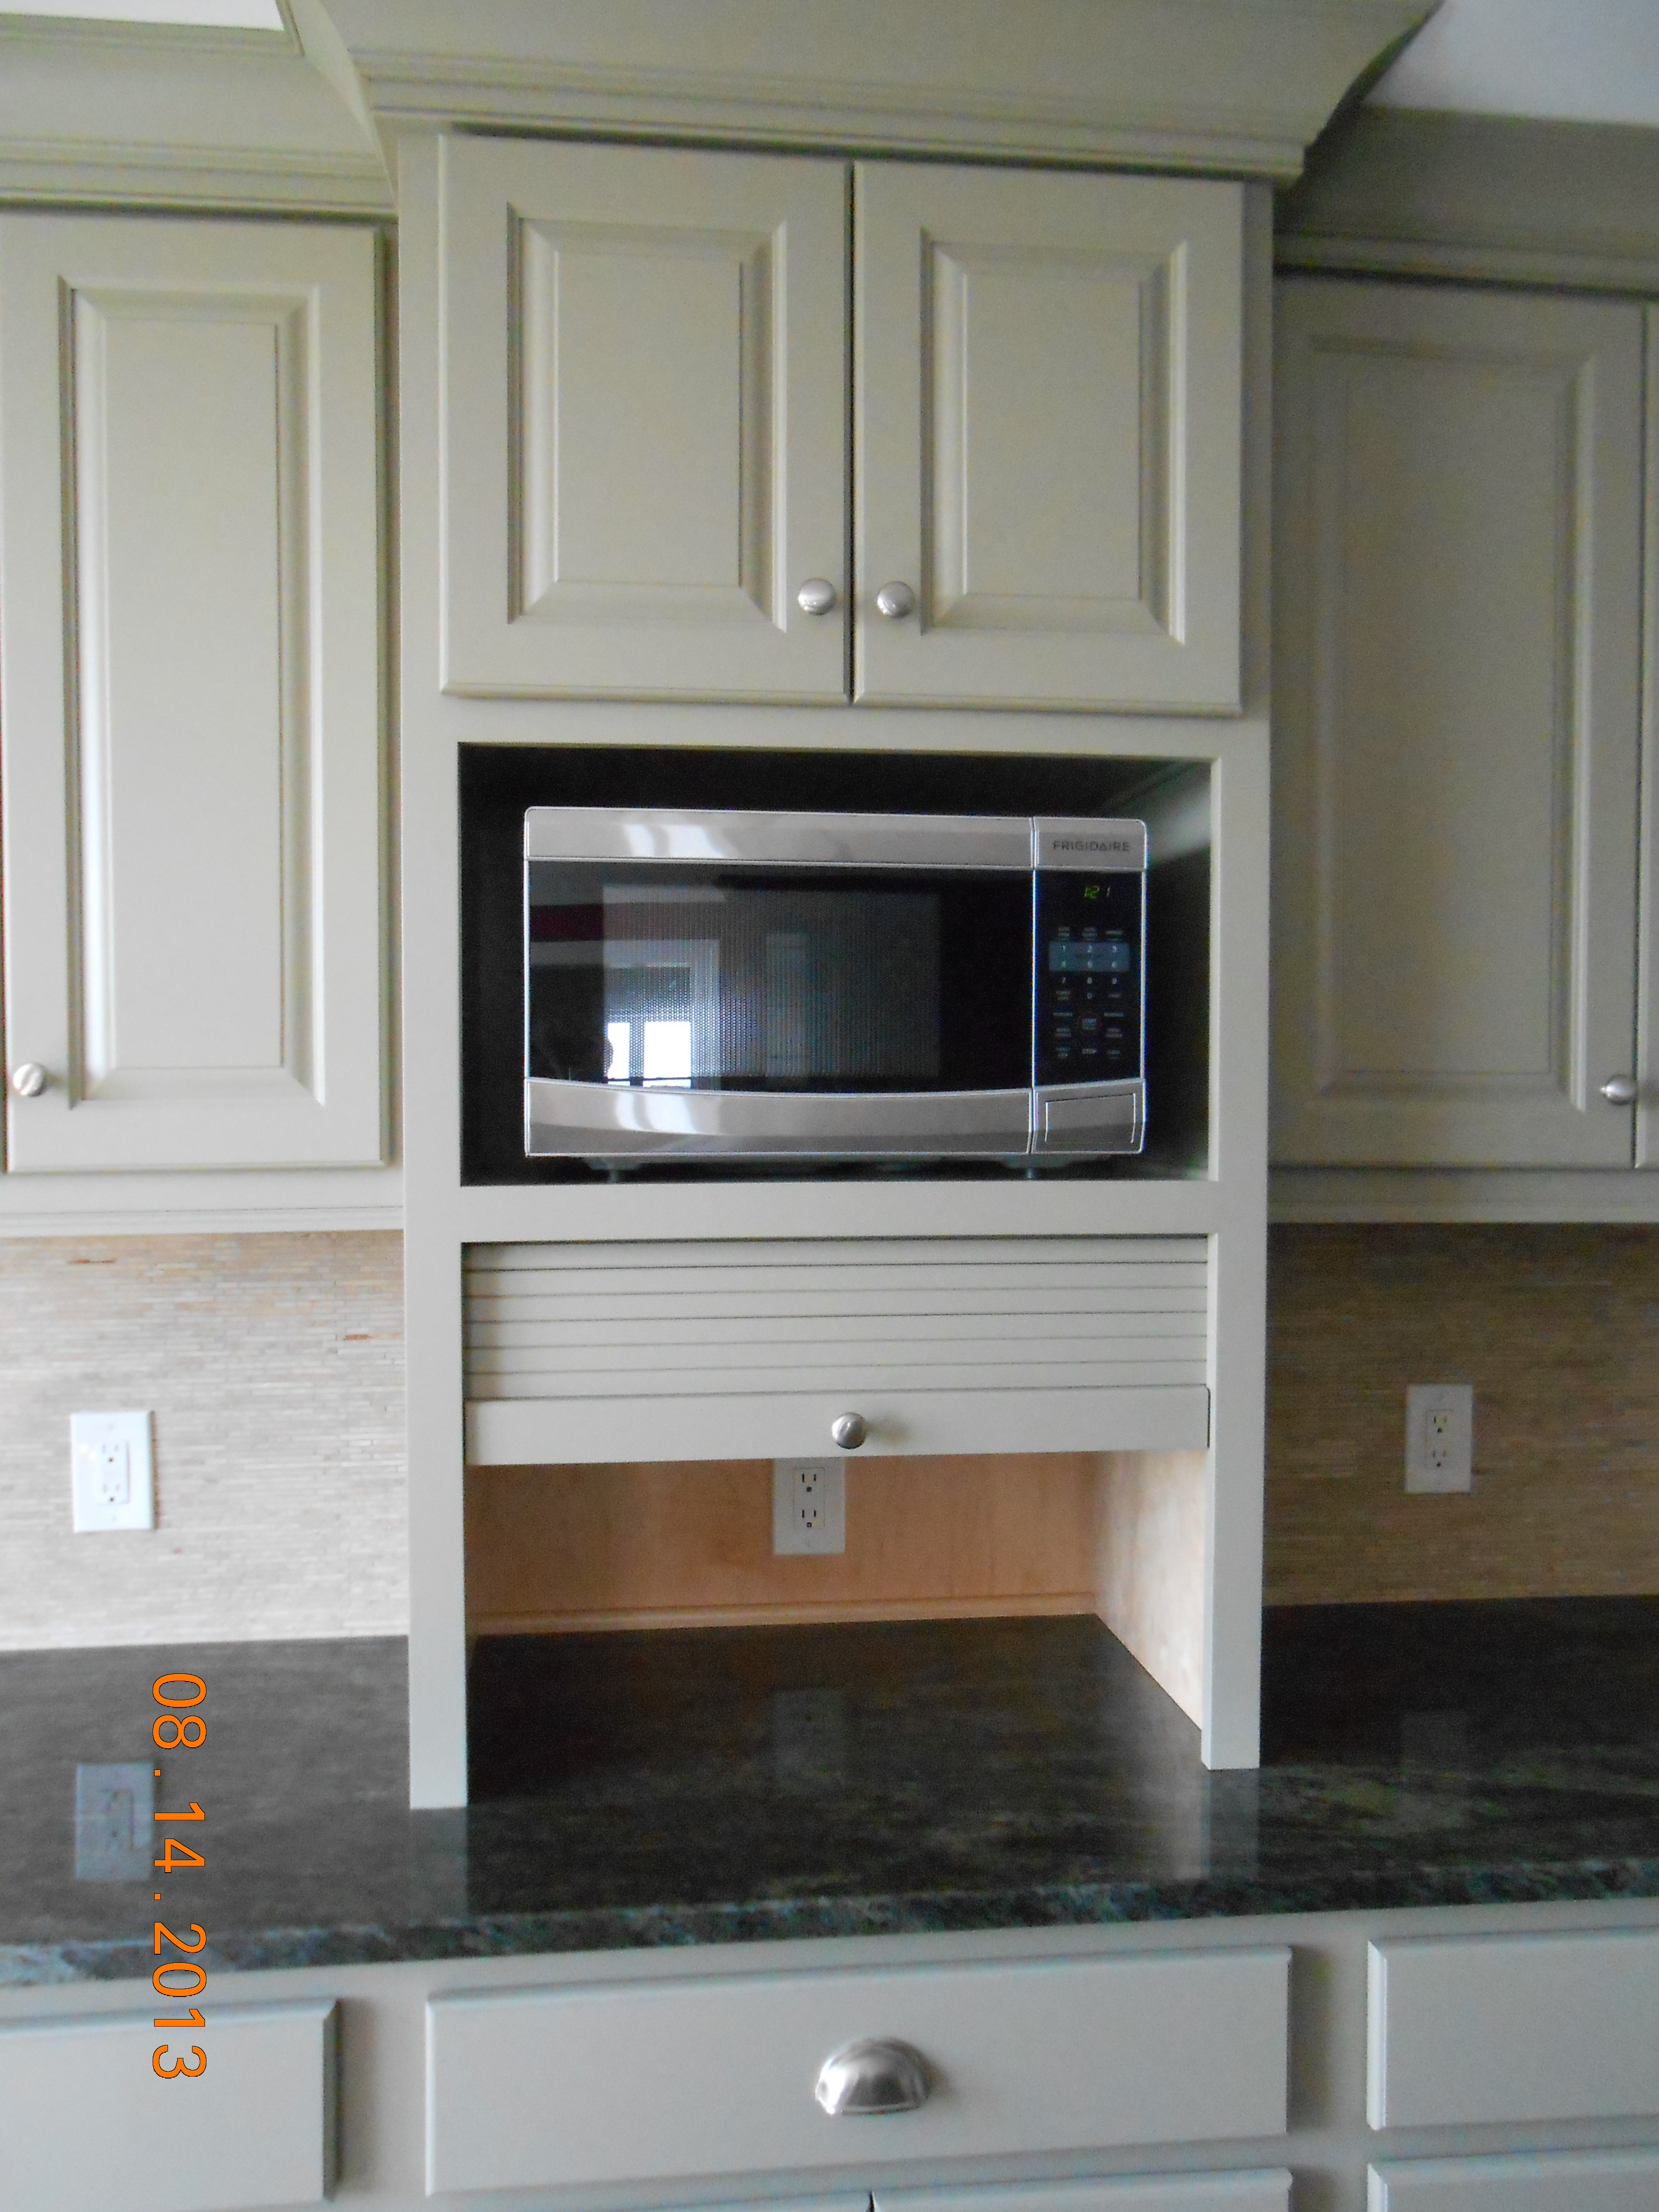 Woodworkdesignsbysteve Decorating With Cabinetry And